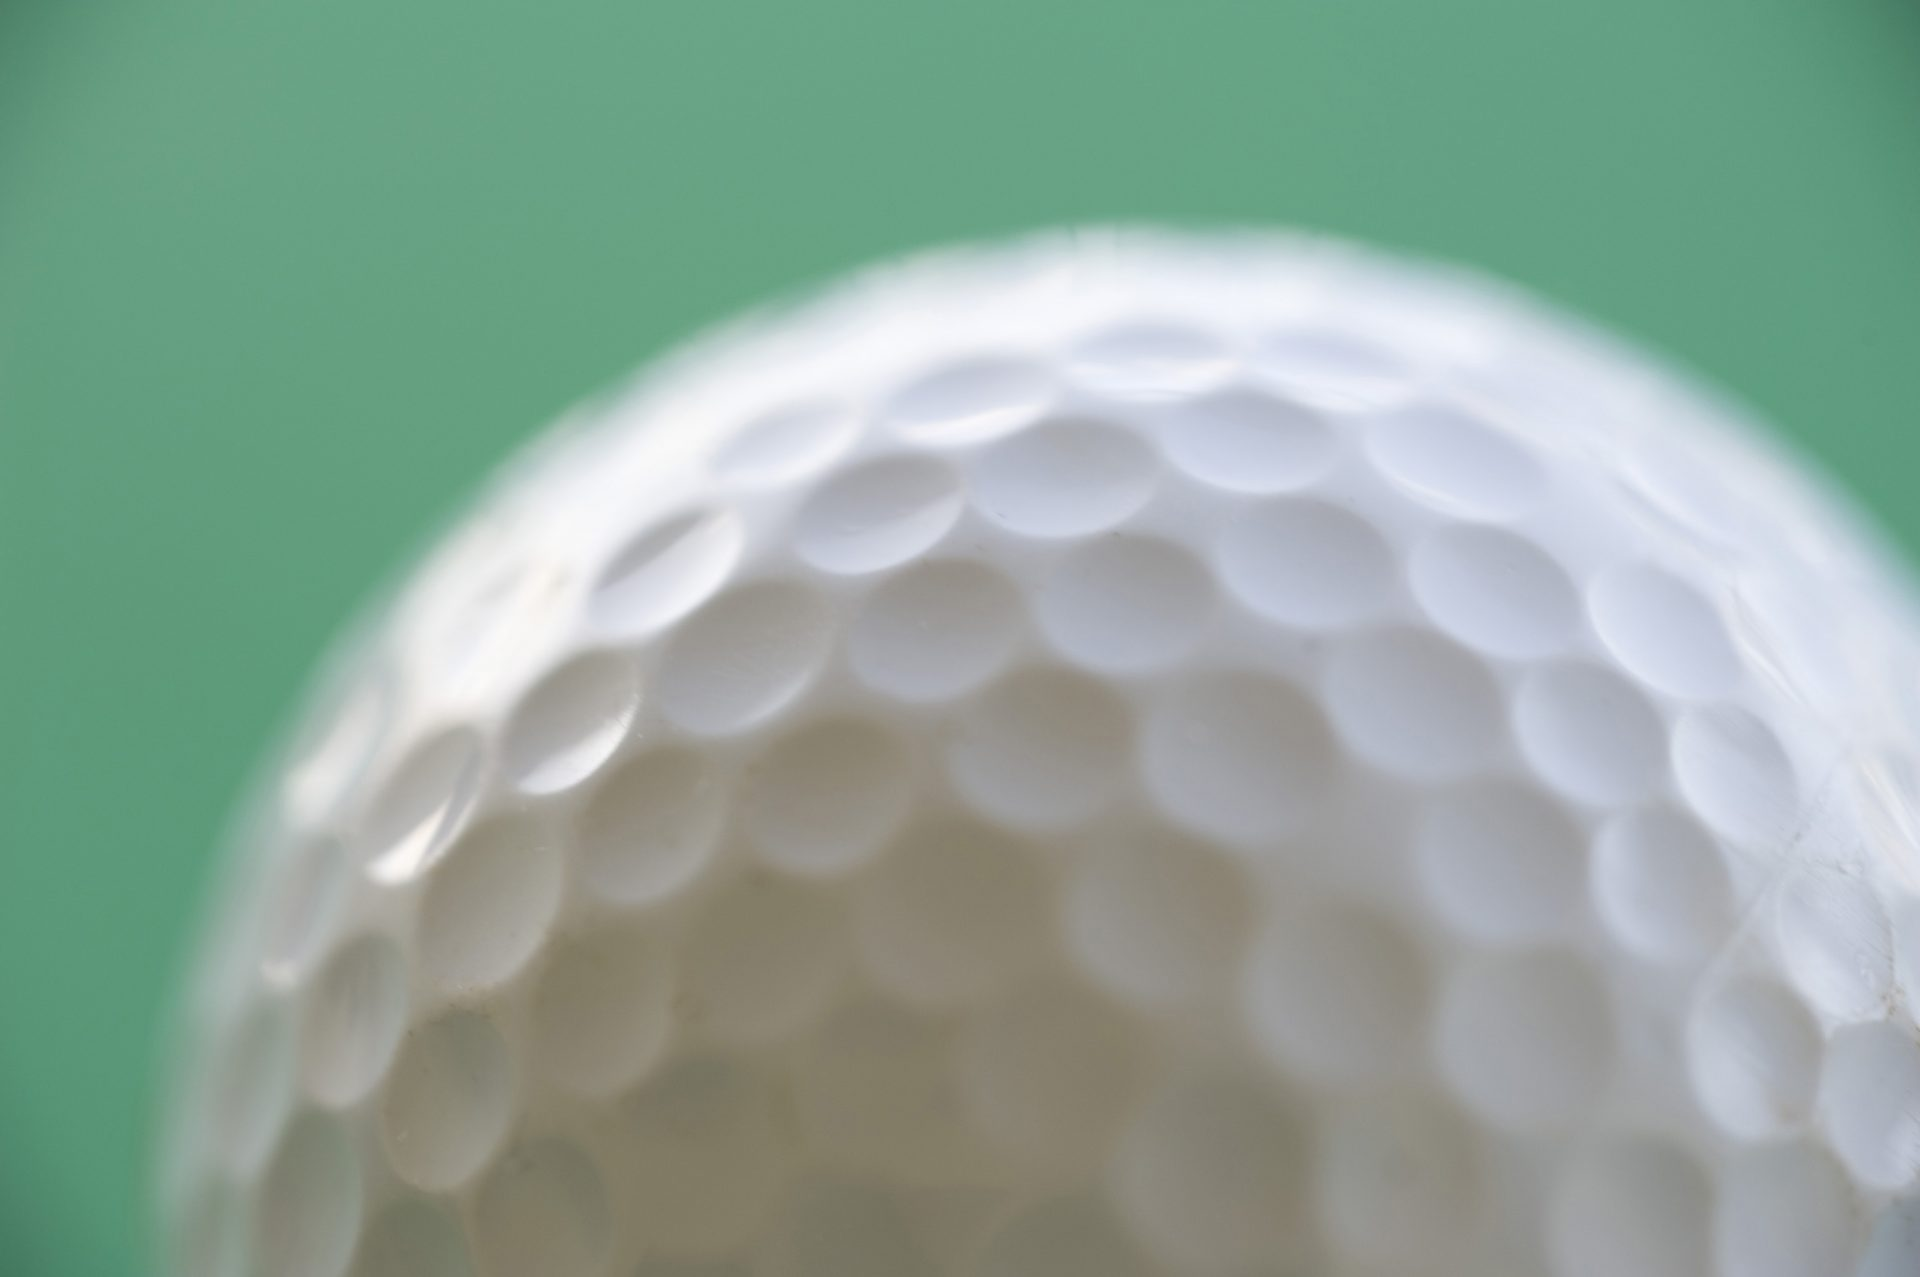 The Dimples On Golf Balls